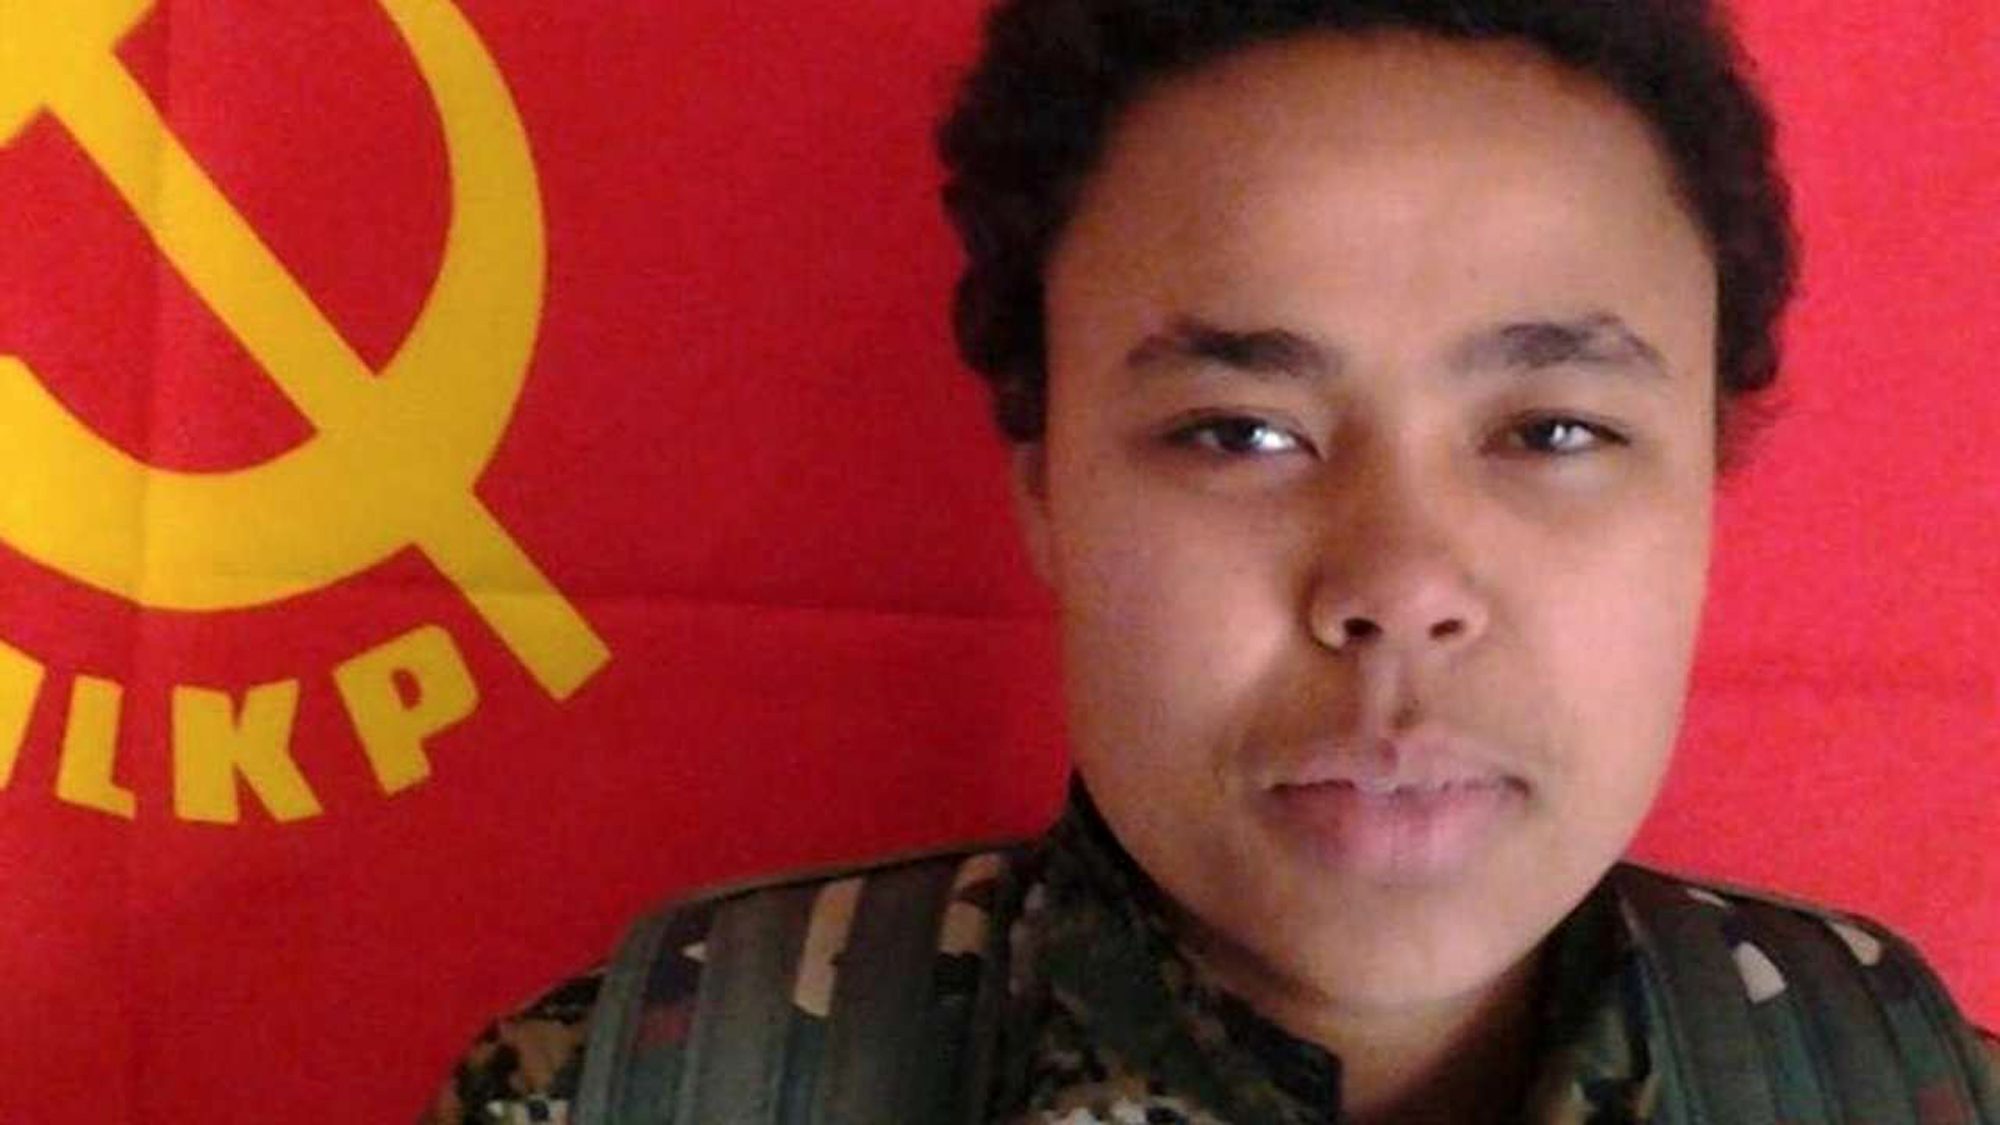 This undated image released by the Kurdish Peoples Protection Units, known as the YPG, on Monday shows Ivana Hoffman, 19, a German citizen fighting with Kurdish militiamen who was killed Saturday battling the Islamic State group near the village of Tel Tamr, Syria, according to Kurdish officials and activists. Hoffman, born in Germany to South African parents, is the third foreign national — and the first female foreign fighter — known to be killed fighting with Kurdish forces against the Islamic State group.   AP